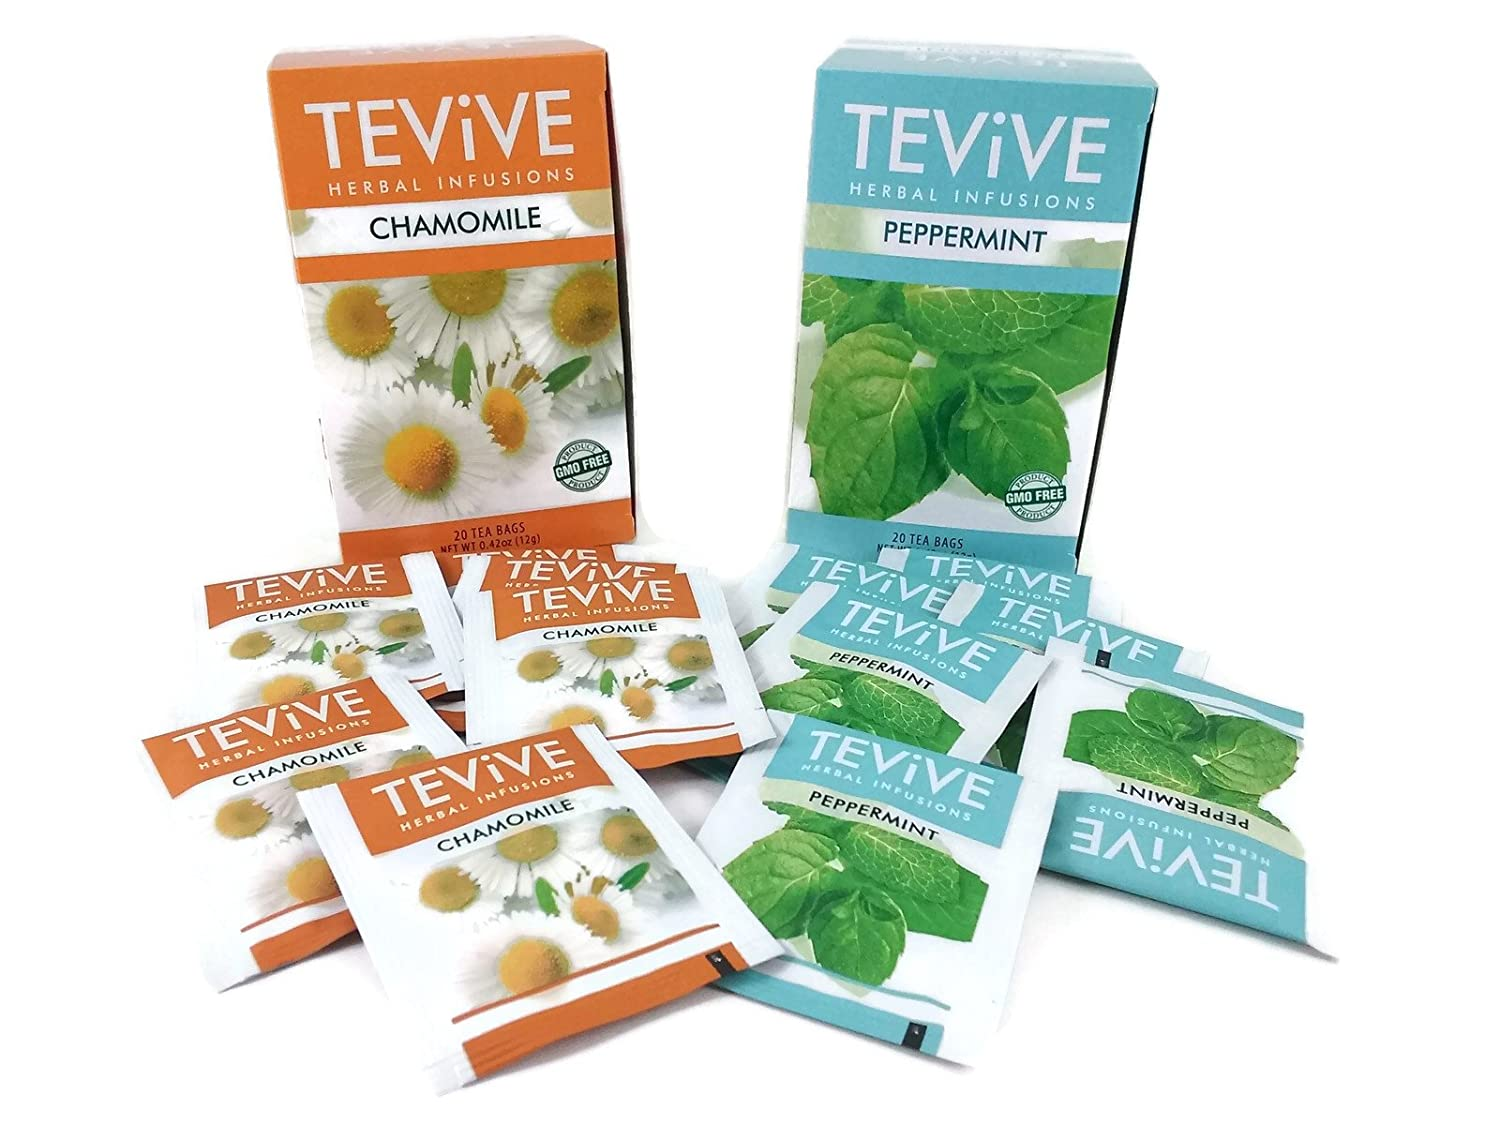 Tevive Peppermint and Chamomile Tea Bundle: One Box Herbal Chamomile Tea, One Box of Peppermint Herbal Tea